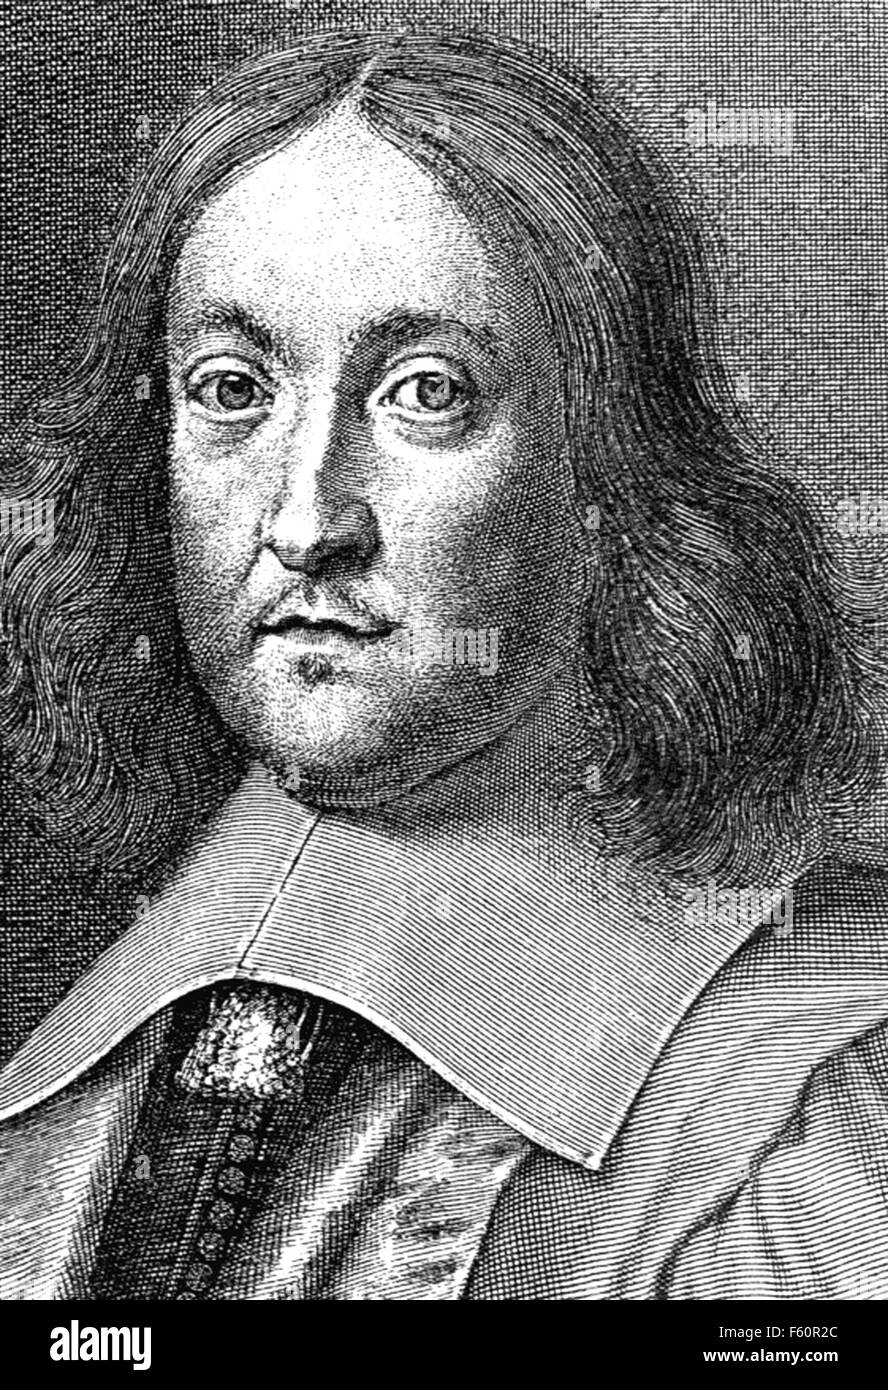 """a biography of the mathematician pierre de fermat """"fermat's enigma"""" is a book that traces the history of the formulation of the  problem in 1637 by pierre de fermat to its eventual solution in 1994."""